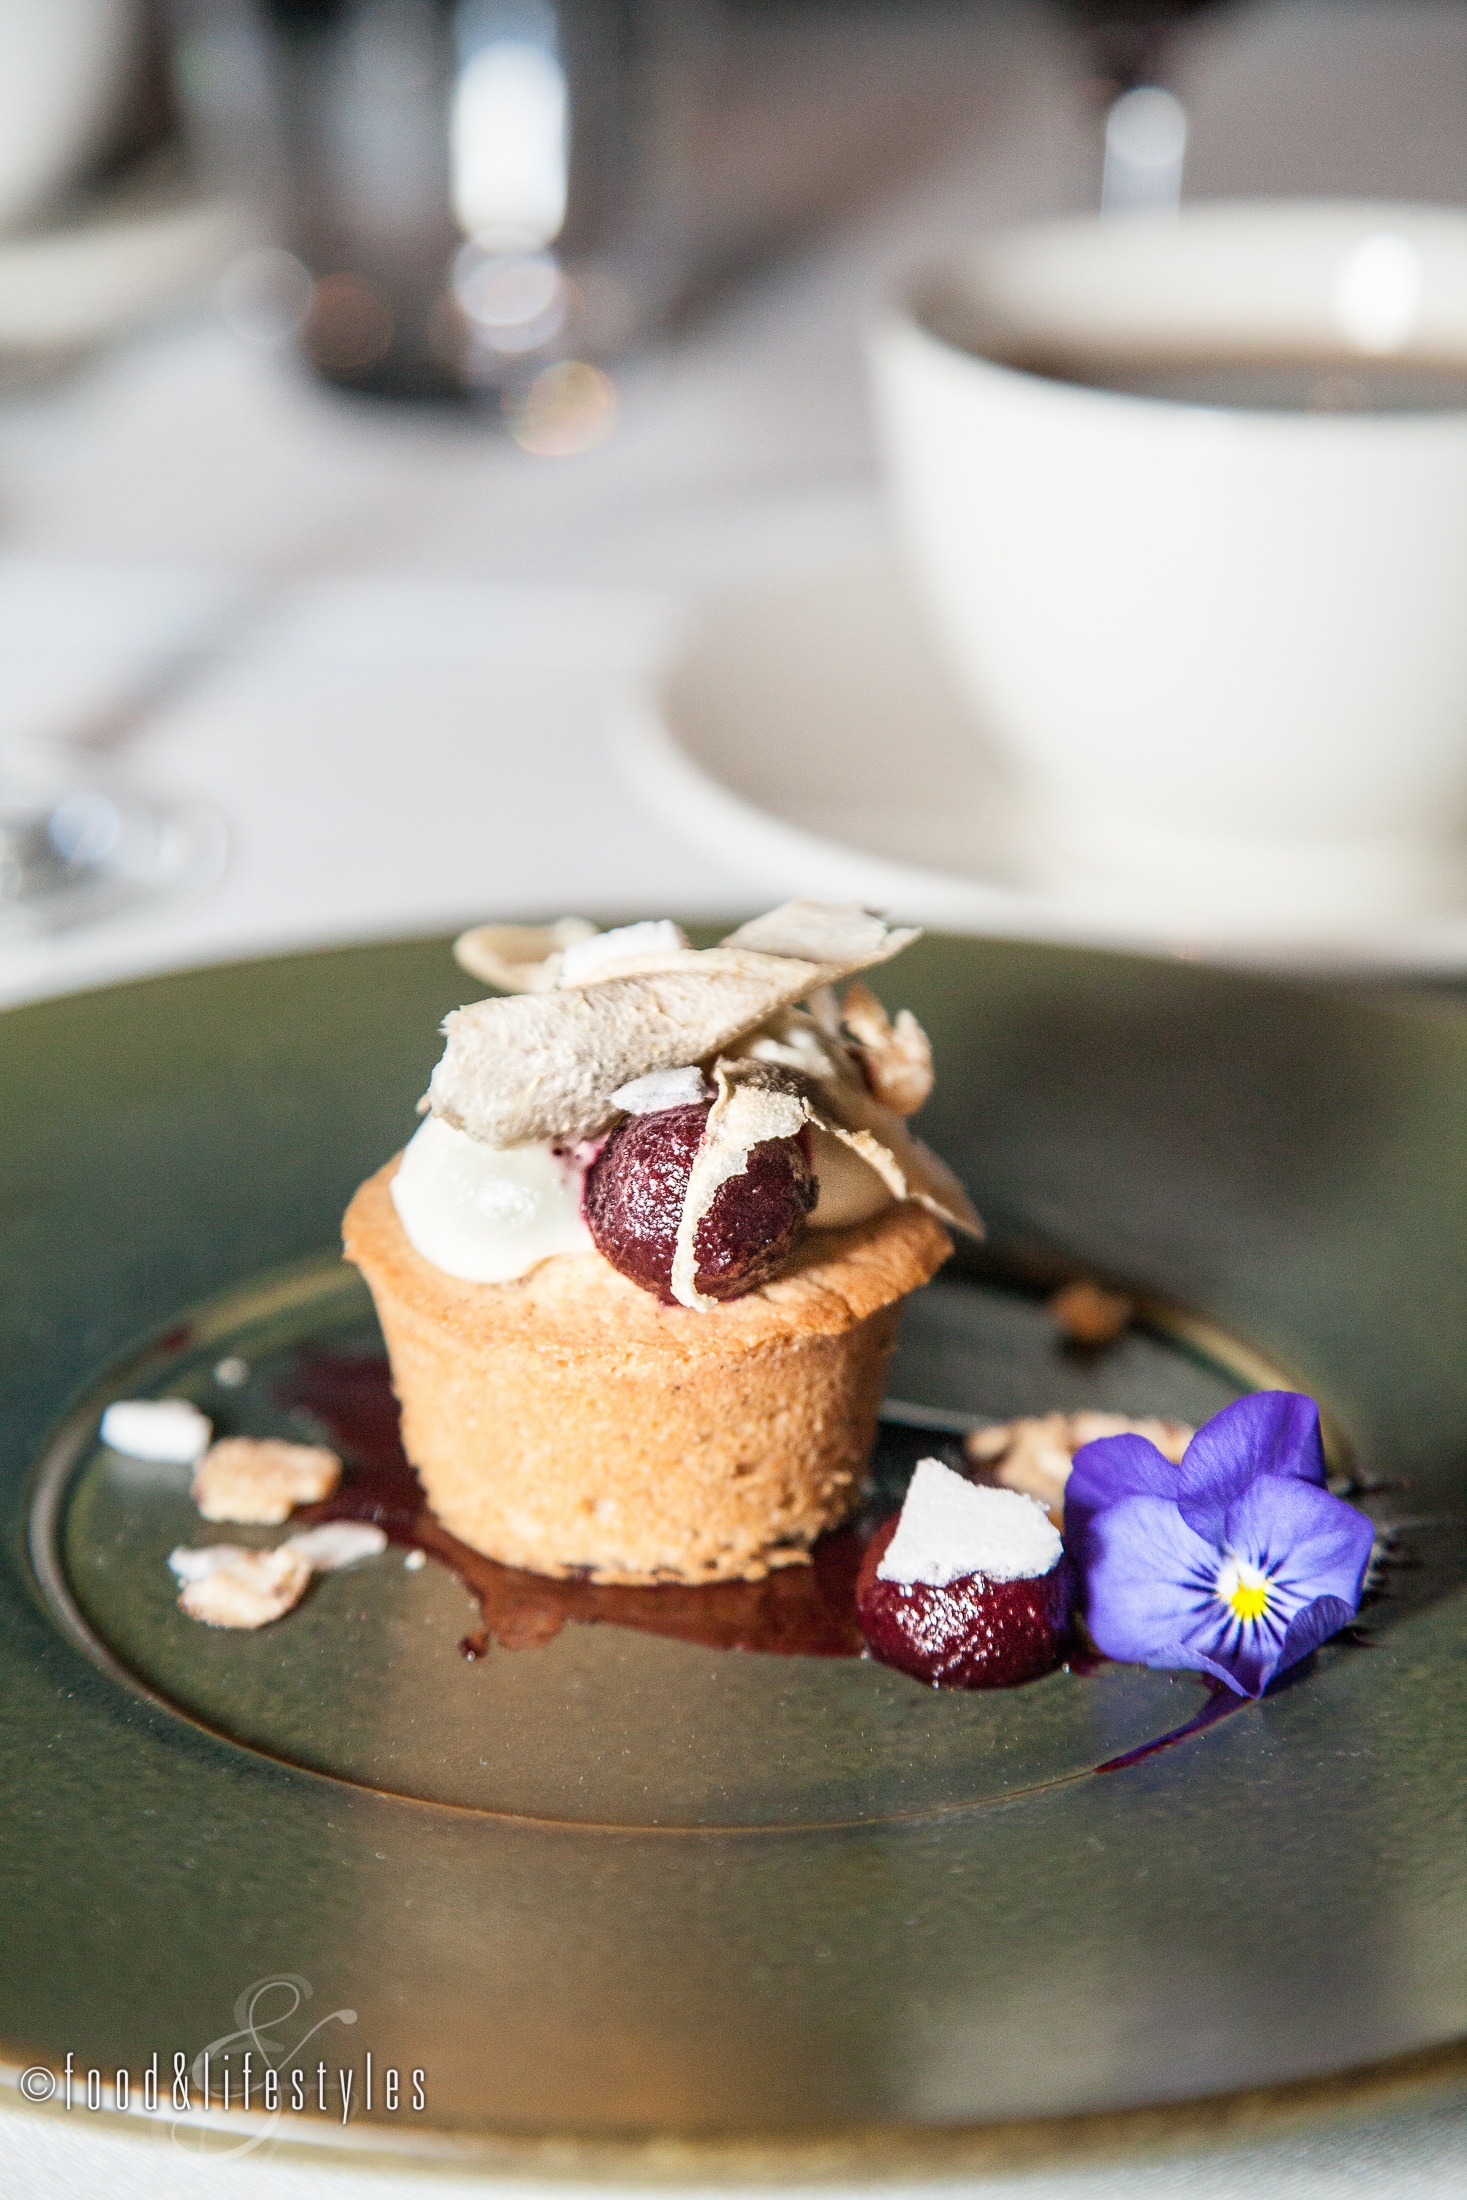 Pear frangipani with almonds and cassis